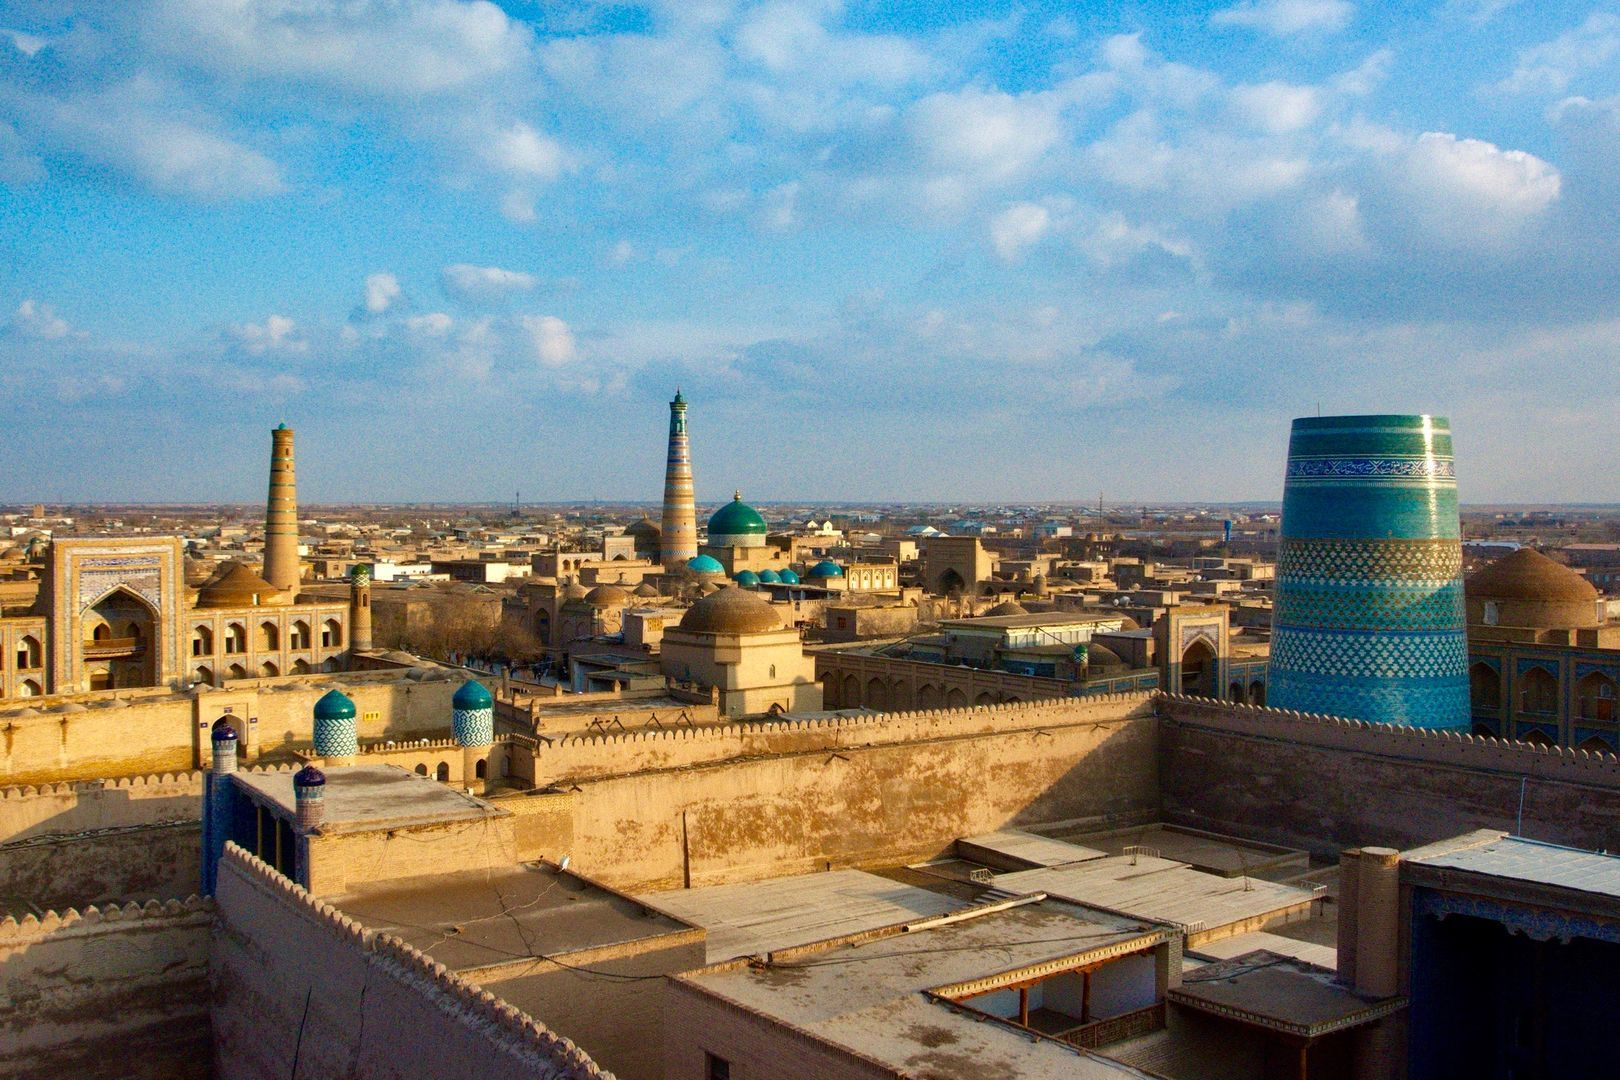 View of Khiva in evening sun light with blue minaret